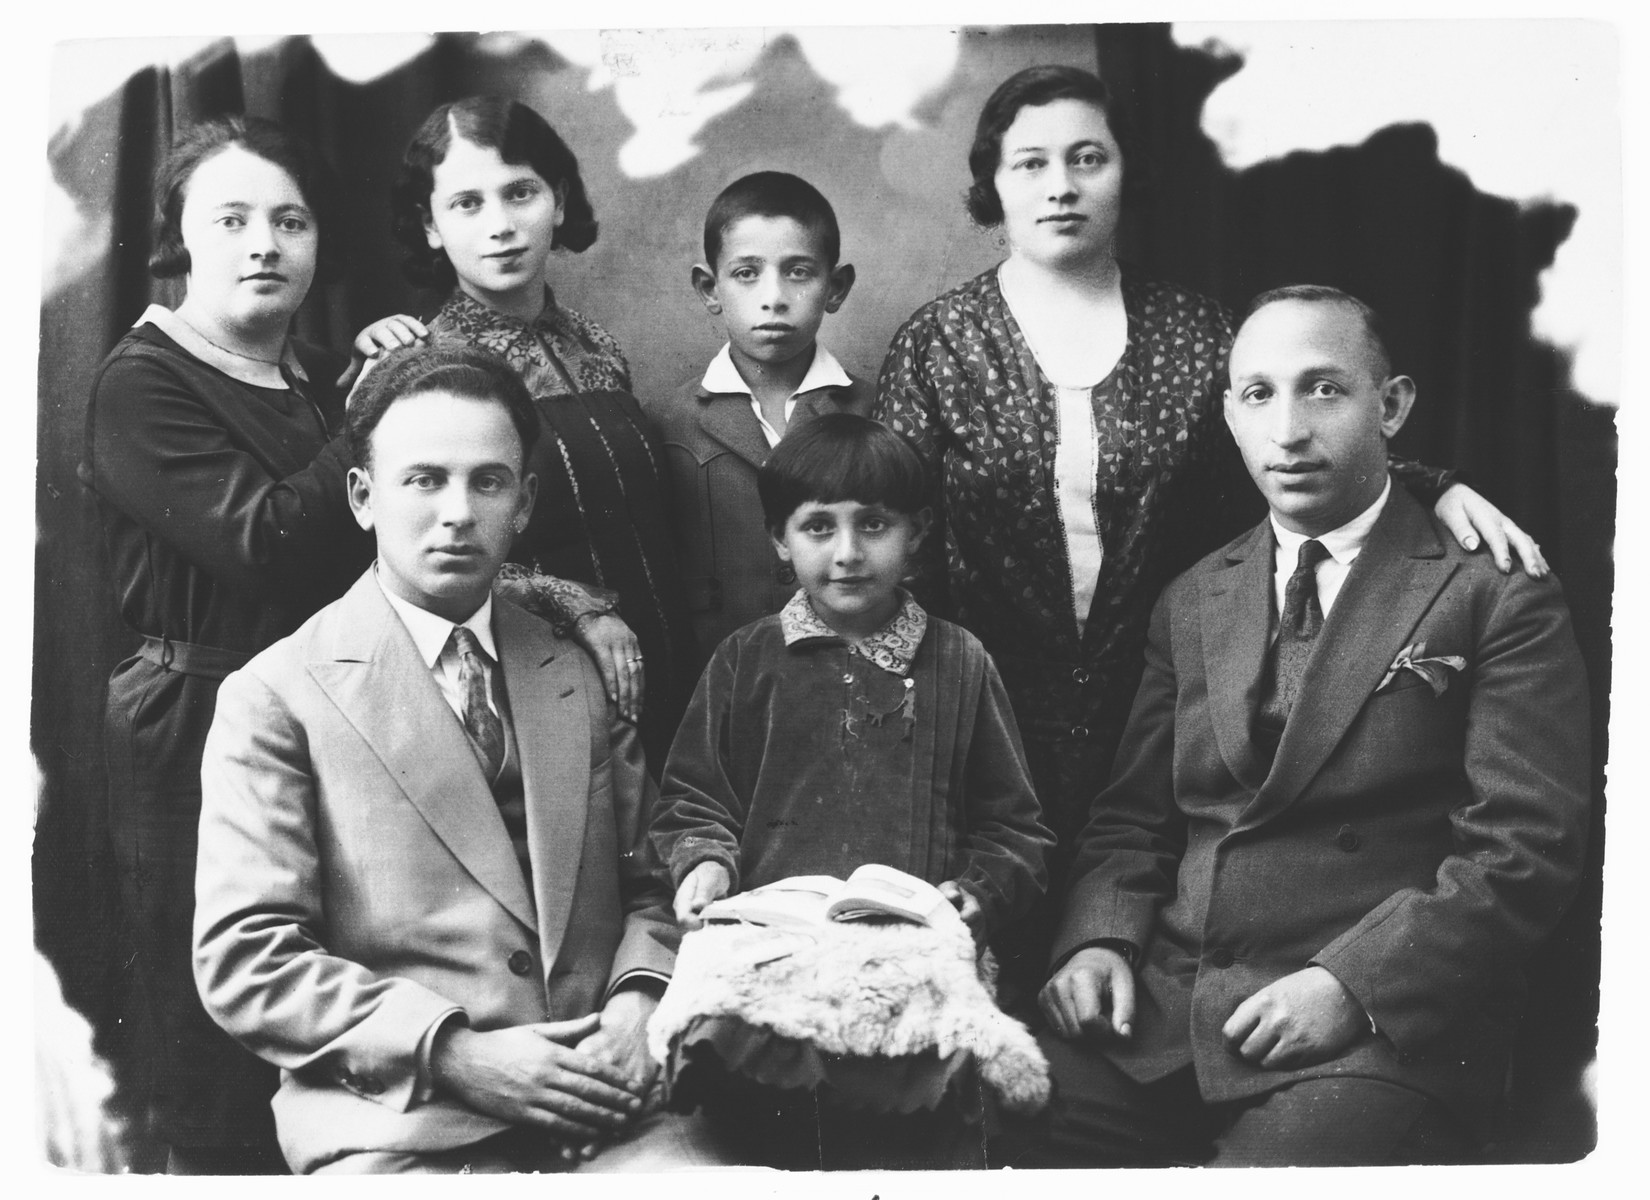 Prewar studio portrait of the Weissman family.  Those pictured include Rivka Weissman (top row, second from the left) and her sisters, Pauline Weissman Smoelevich (top row, far left) and Gnedel Pomerancz (top row right).  Gnedel's daughter Rushka is seated in the front row, center next to her father.  Of those pictured, only Rivka and Pauline survived.